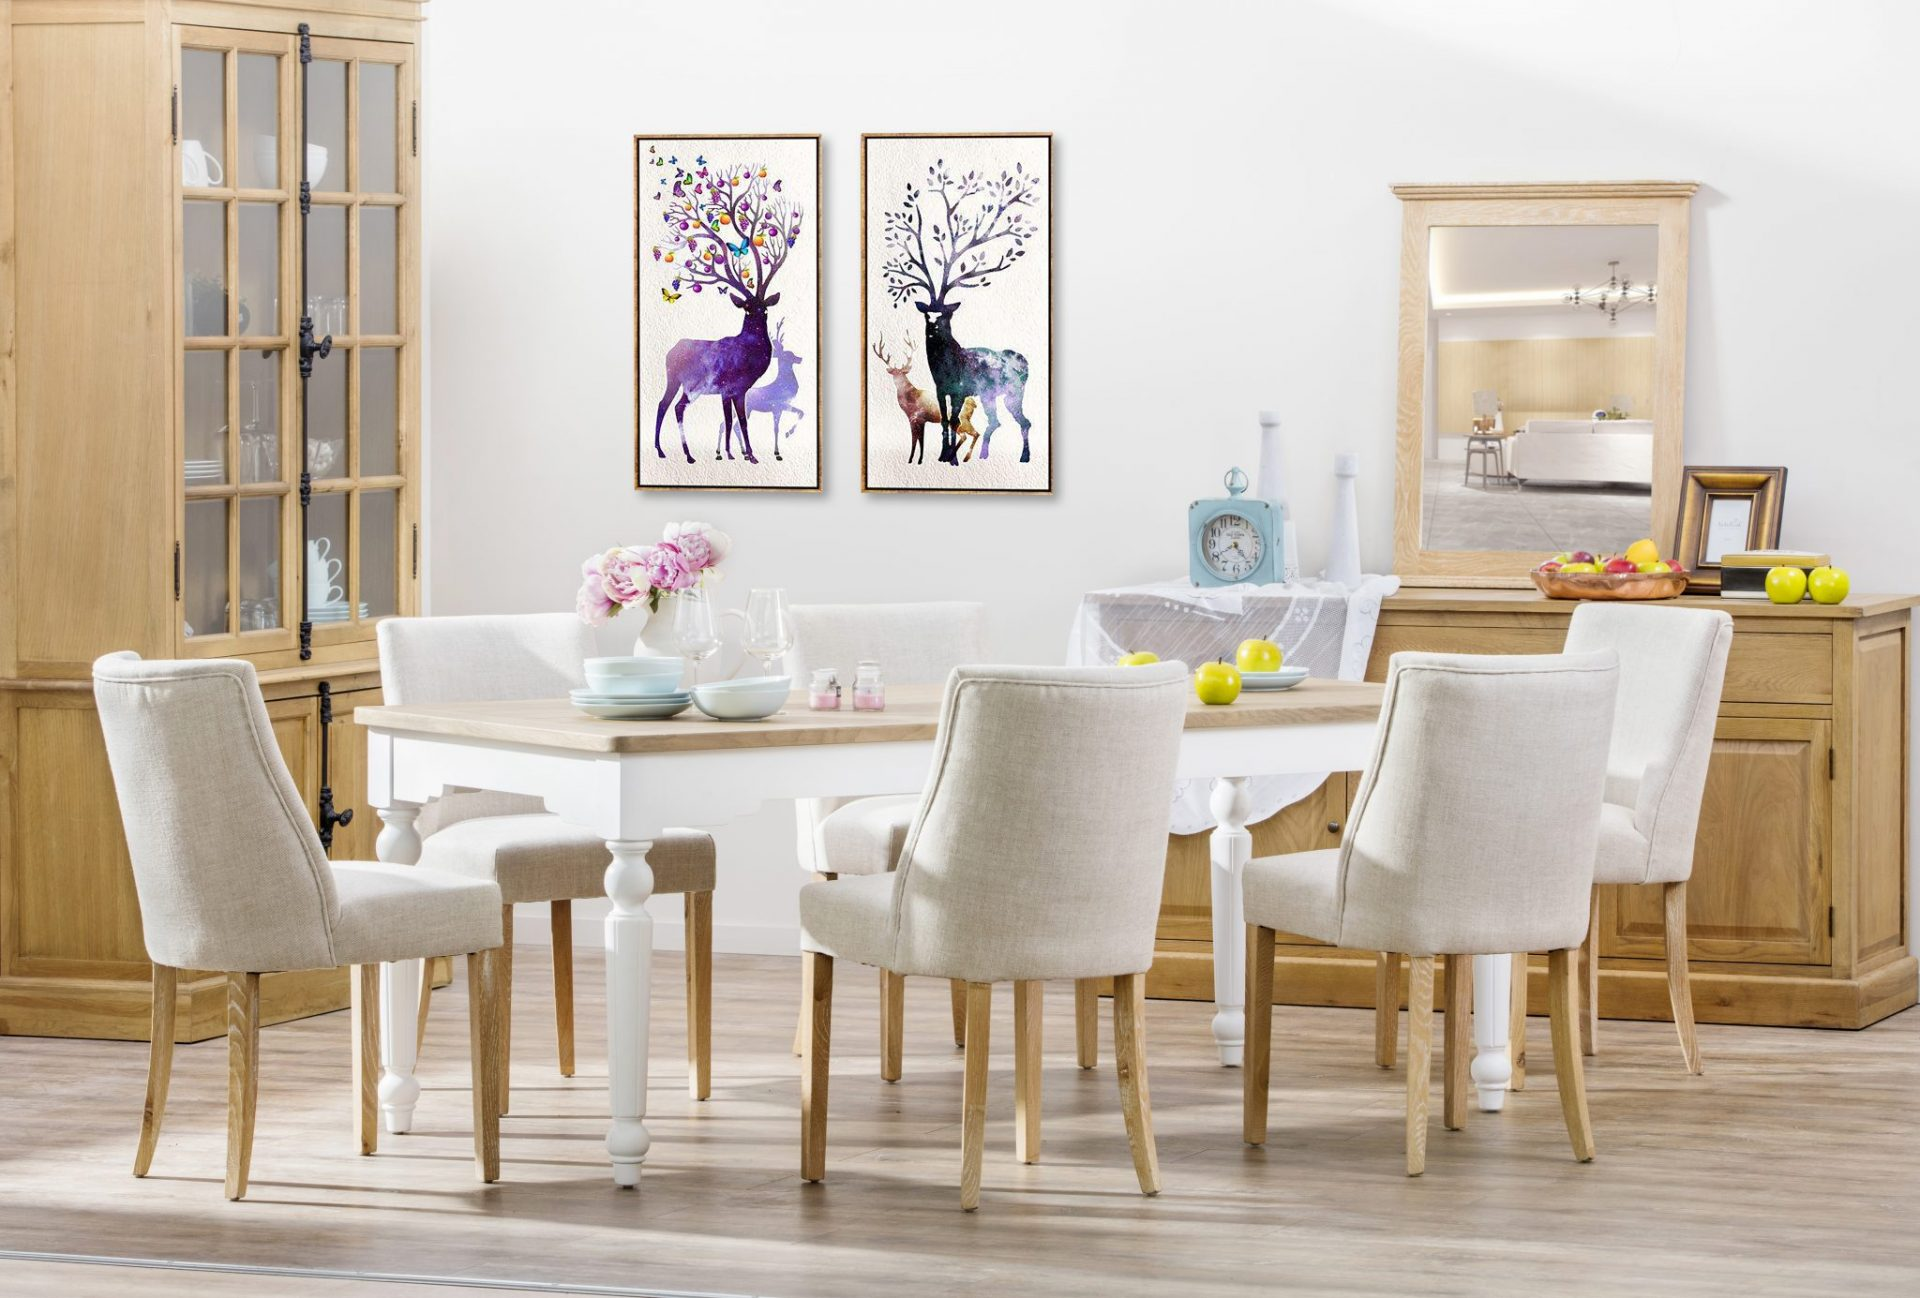 Dining Room Table Chair Furniture - All 4 Furnishings